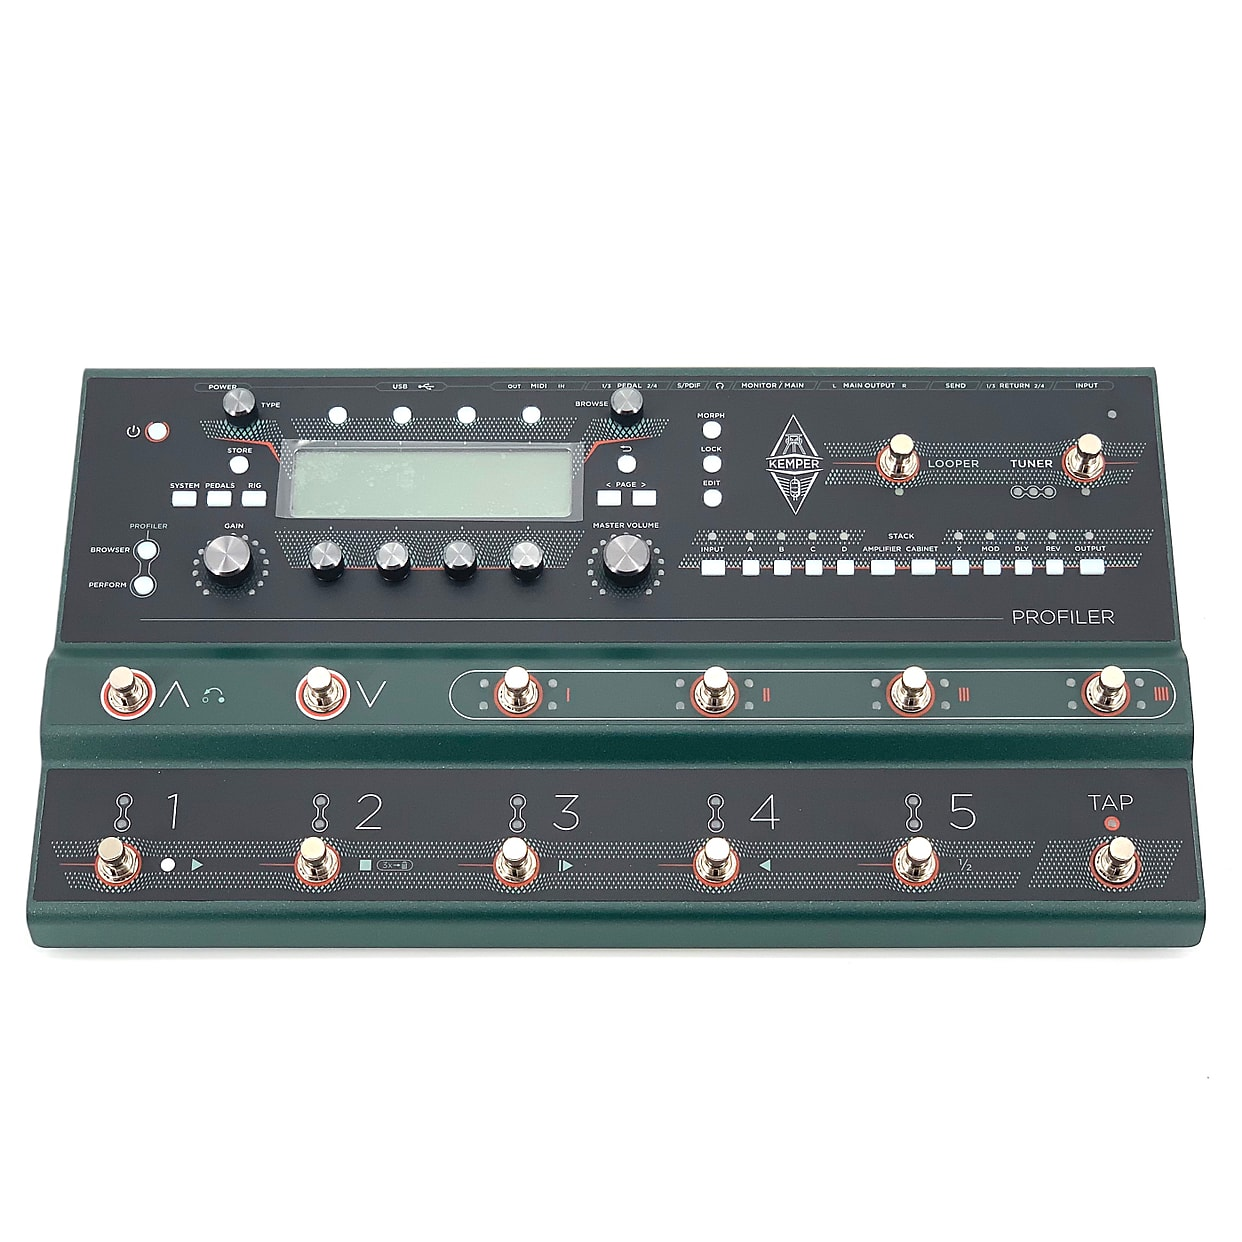 Kemper Profiler Stage - Now In Stock! - Brand New - Authorized Dealer - Free Shipping!